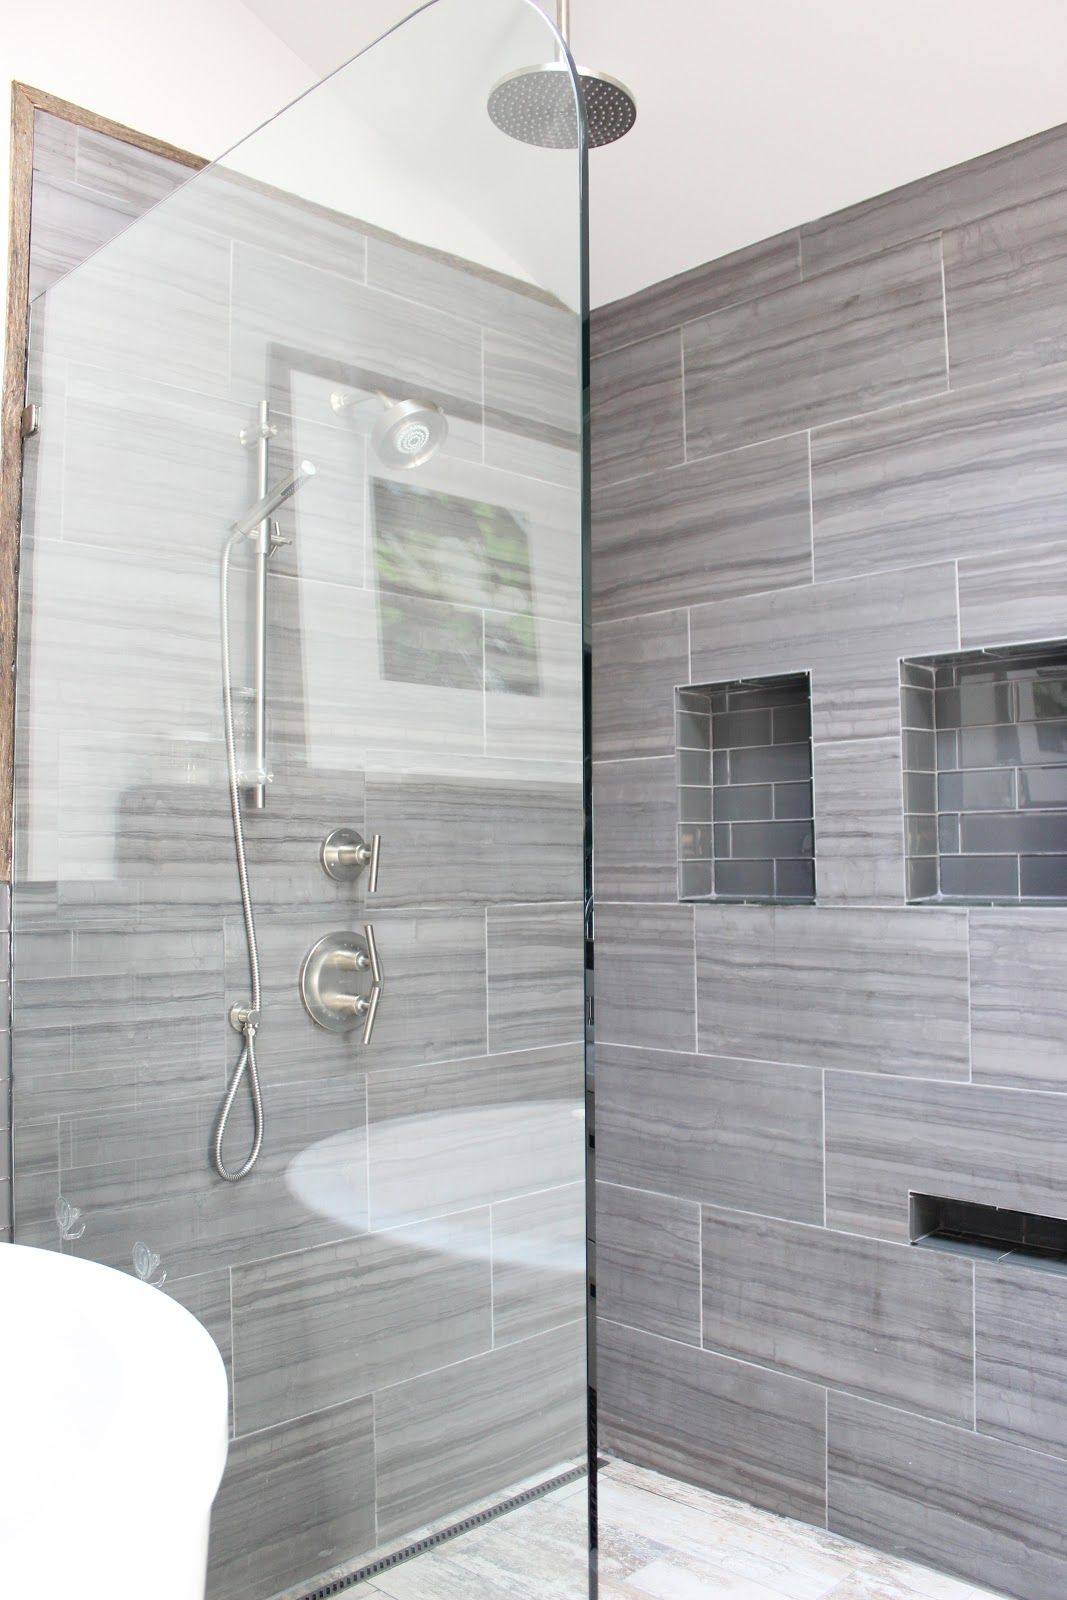 12x24 tile on pinterest vertical shower tile porcelain for Pictures of bathroom tiles designs